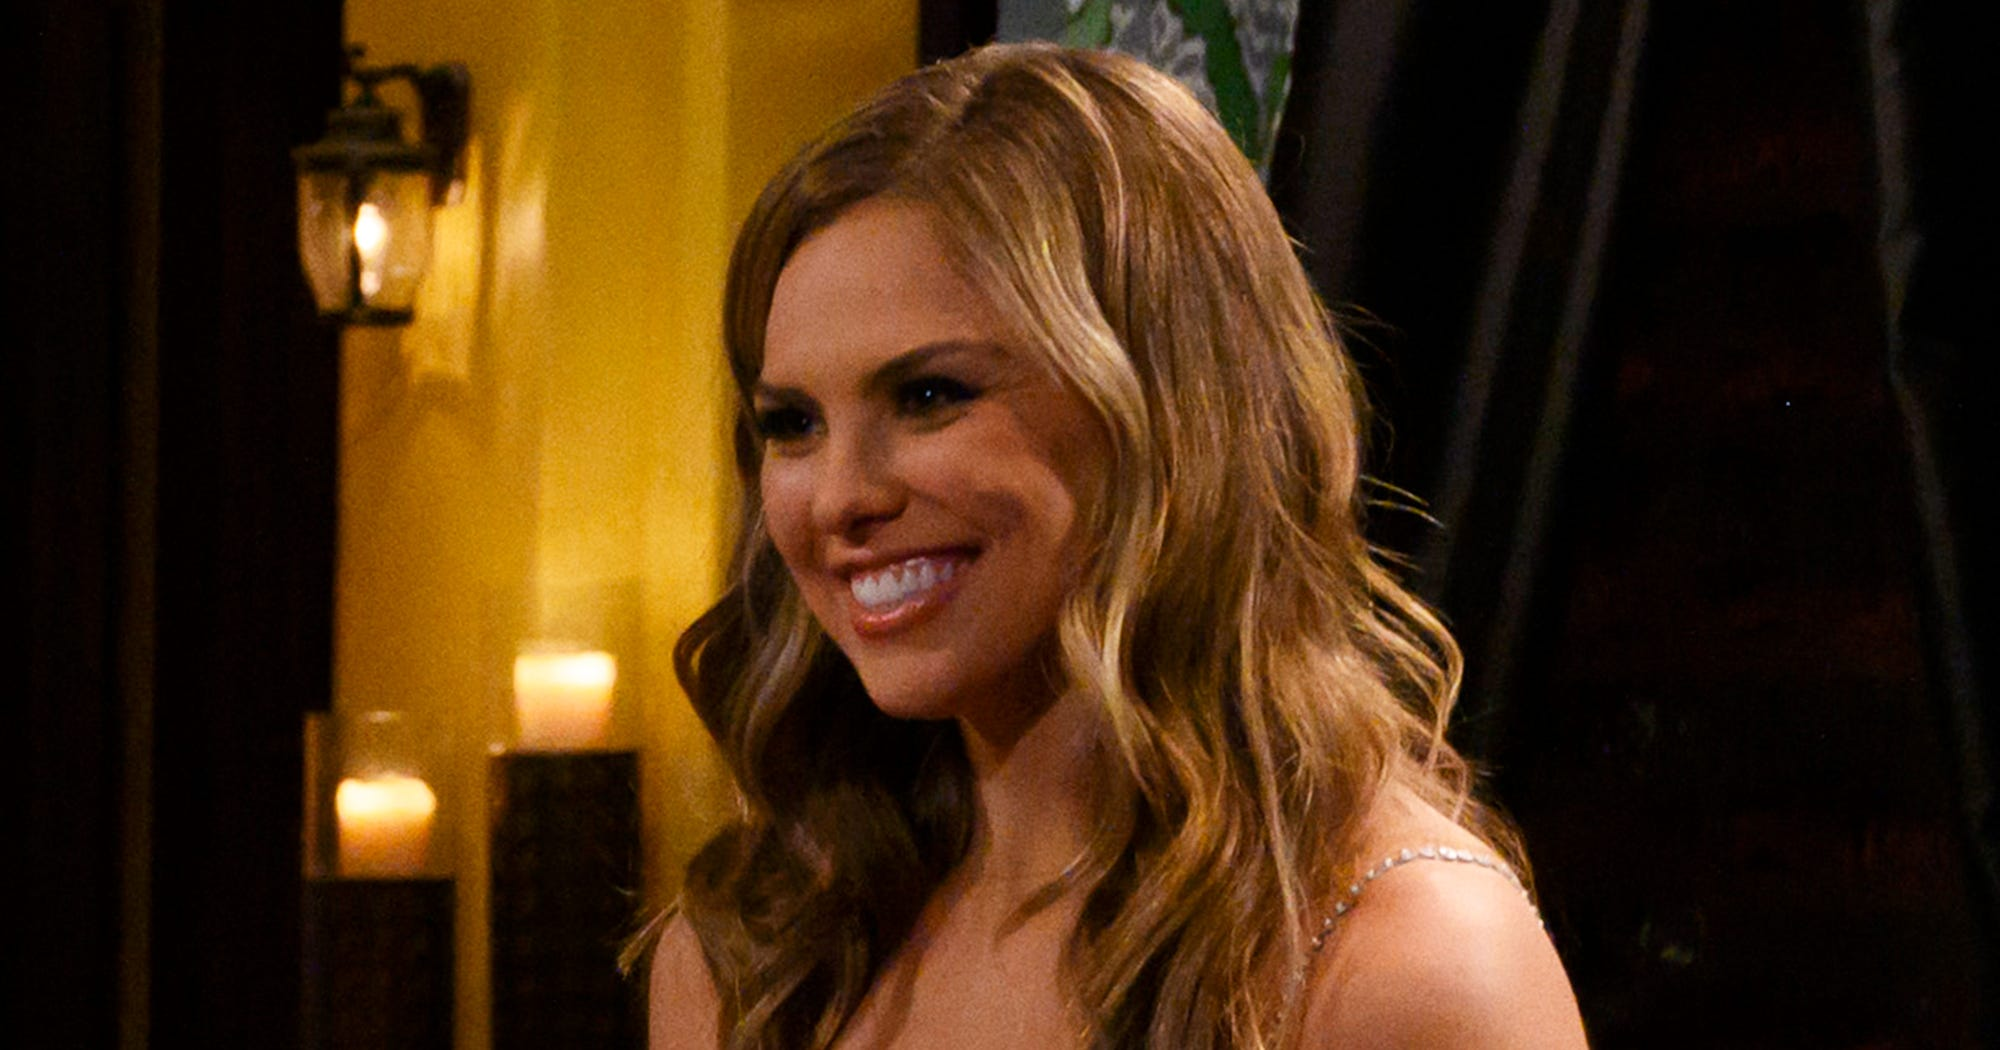 Hannah Brown Wore $525 Worth Of Makeup For Her 'Bachelorette' Premiere